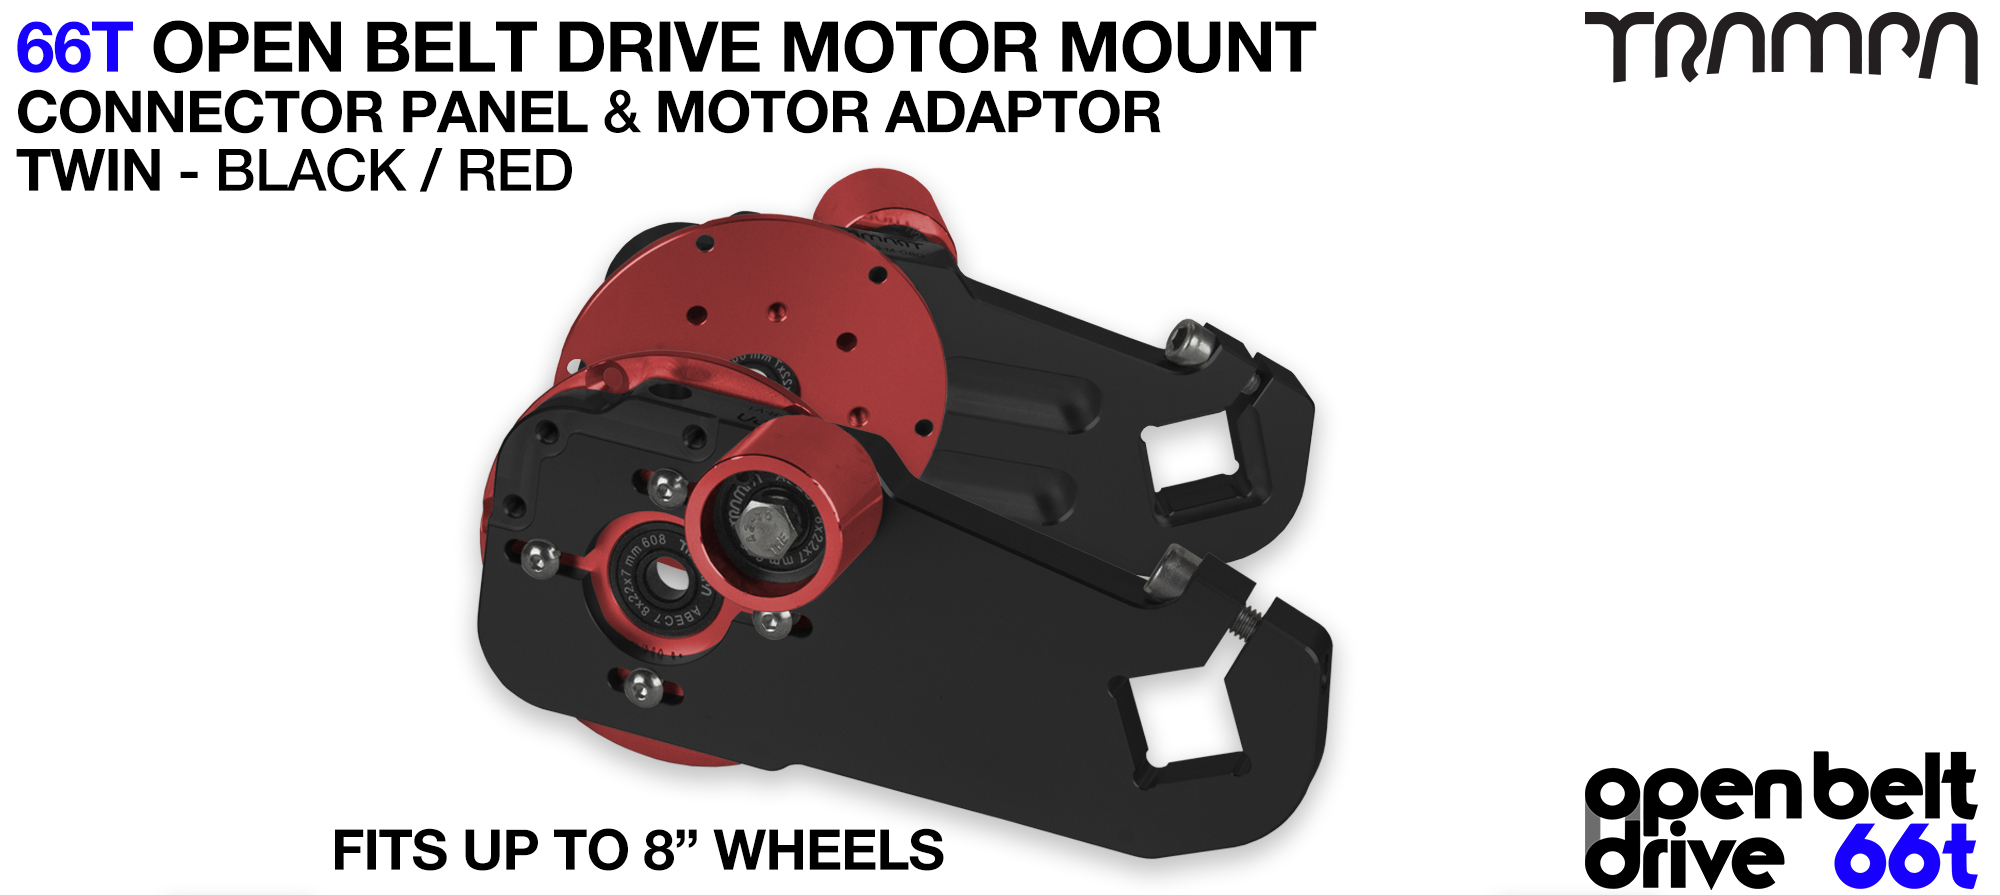 66T OPEN BELT DRIVE Motor Mount & Motor Adaptor - TWIN RED